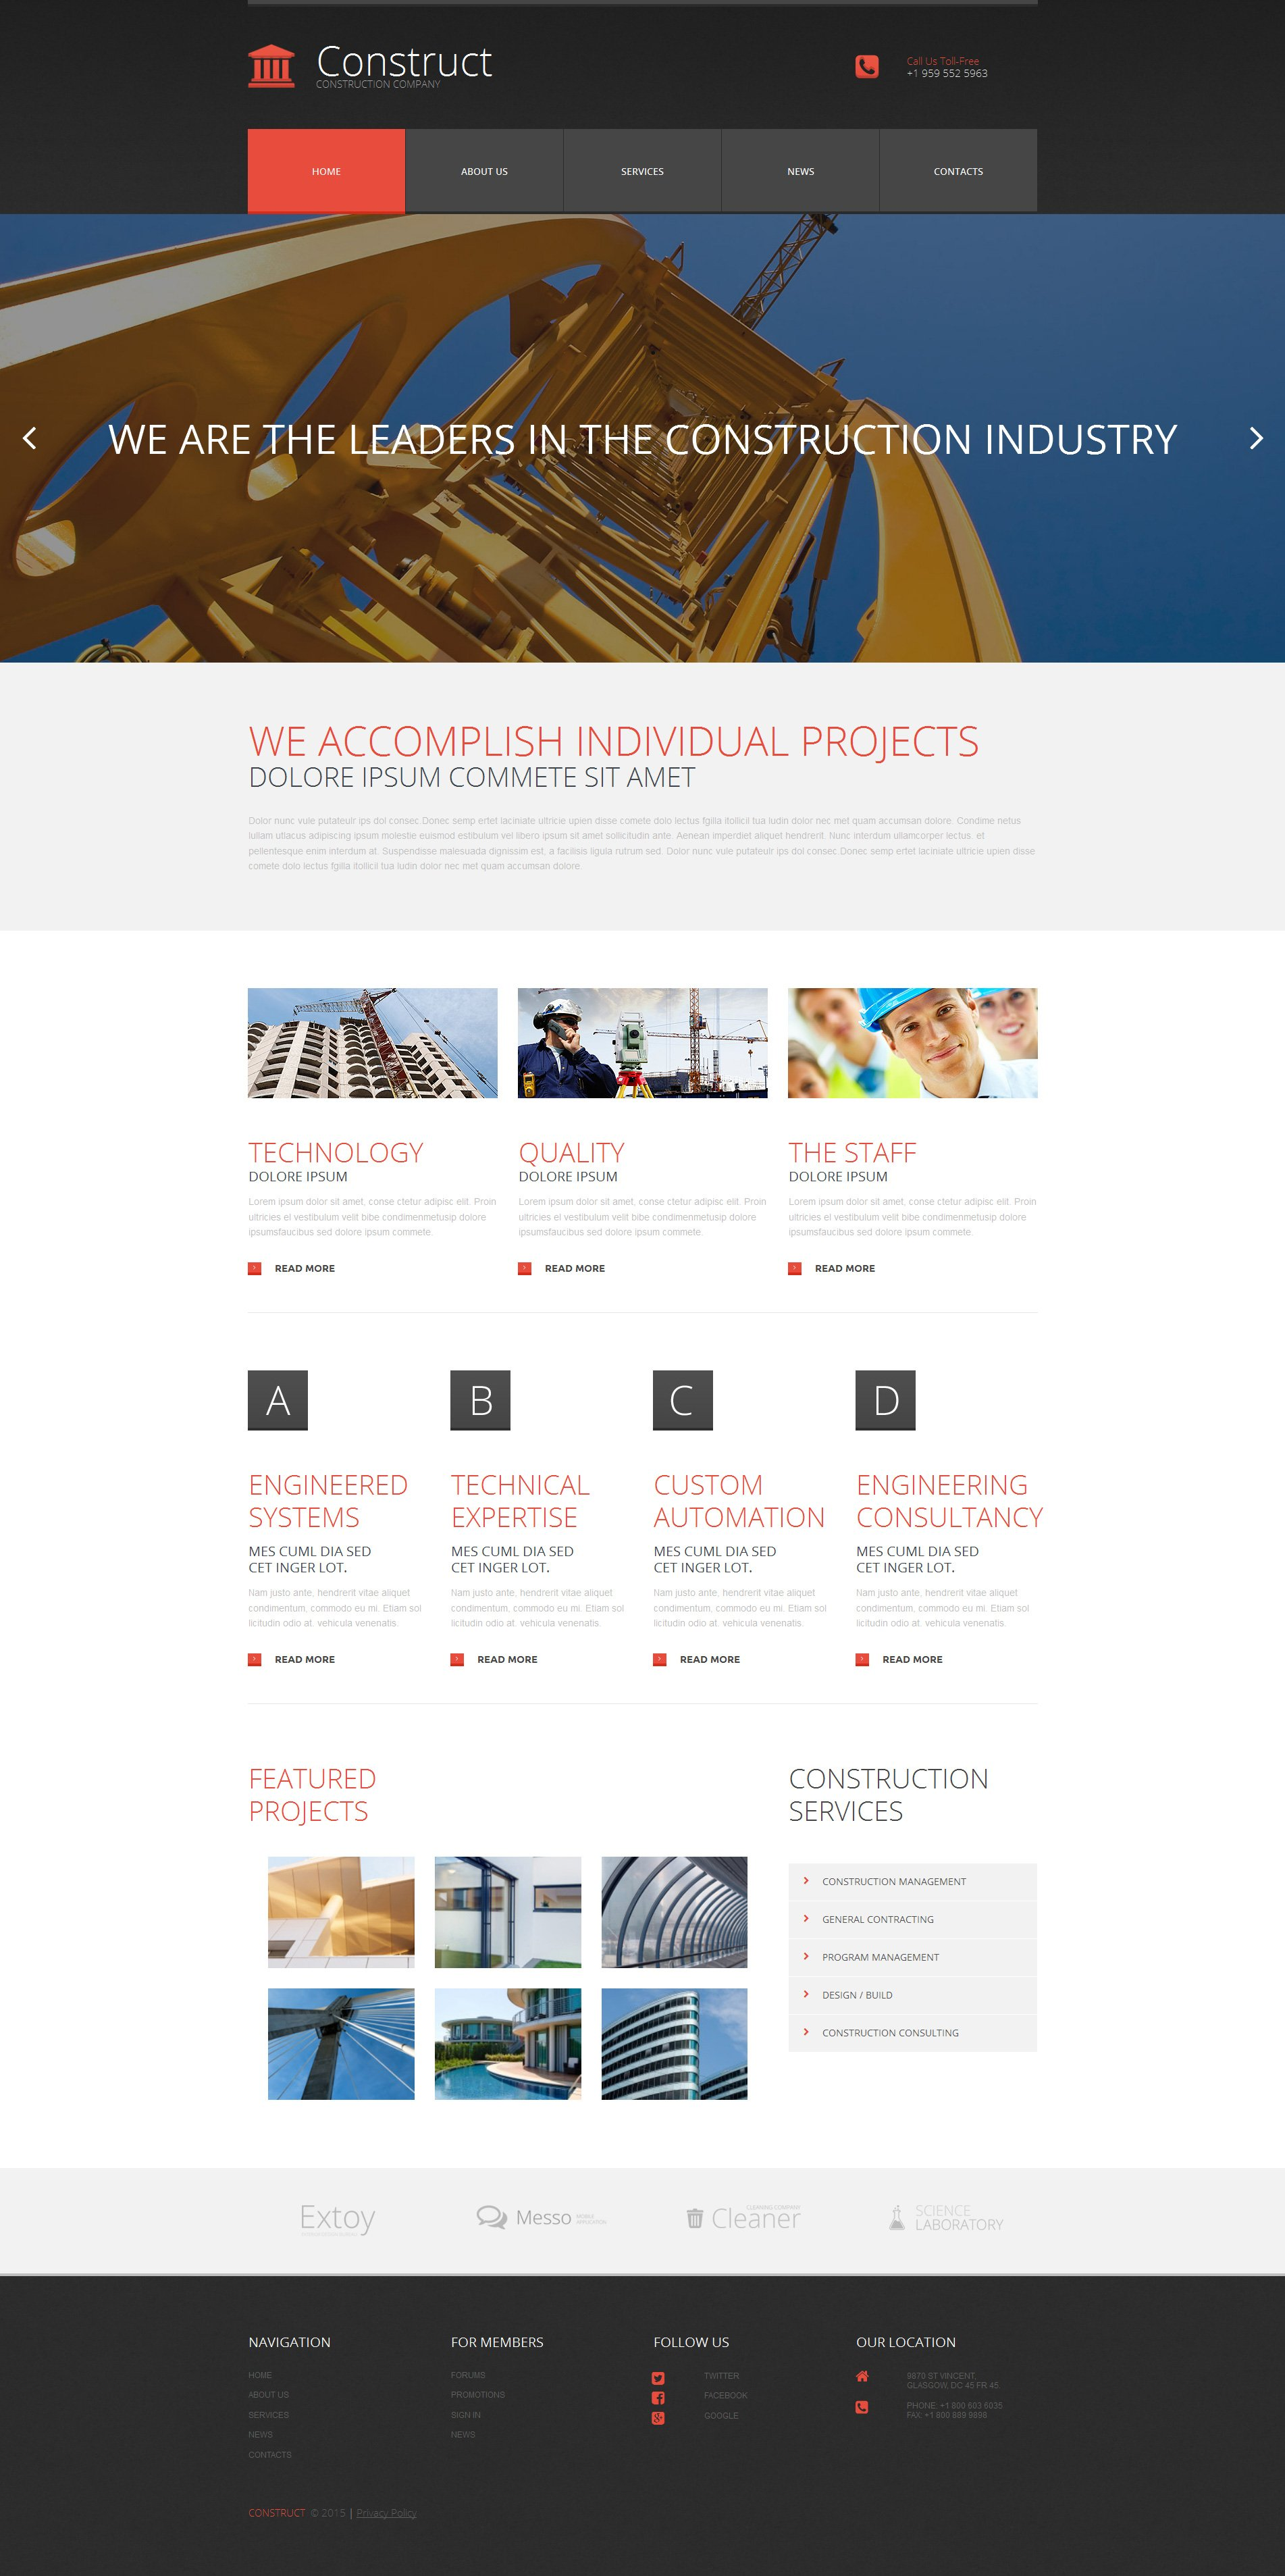 The Construct Architecture Company Moto CMS 3 Templates Design 53227, one of the best Moto CMS 3 templates of its kind (architecture), also known as construct architecture company Moto CMS 3 template, architectural company bureau Moto CMS 3 template, buildings Moto CMS 3 template, technology Moto CMS 3 template, innovation Moto CMS 3 template, skyscrapers Moto CMS 3 template, projects Moto CMS 3 template, constructions Moto CMS 3 template, houses Moto CMS 3 template, work Moto CMS 3 template, team Moto CMS 3 template, strategy Moto CMS 3 template, services Moto CMS 3 template, support Moto CMS 3 template, planning Moto CMS 3 template, custom design Moto CMS 3 template, enterprise Moto CMS 3 template, clients Moto CMS 3 template, partners Moto CMS 3 template, esteem and related with construct architecture company, architectural company bureau, buildings, technology, innovation, skyscrapers, projects, constructions, houses, work, team, strategy, services, support, planning, custom design, enterprise, clients, partners, esteem, etc.